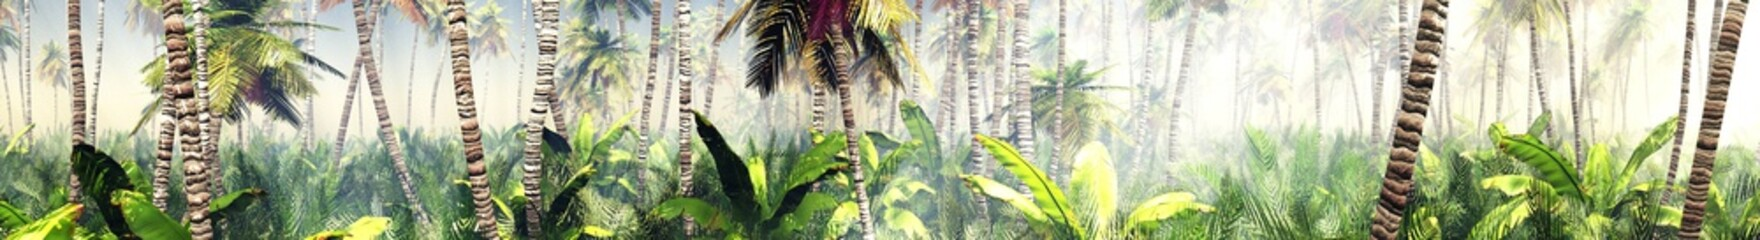 Fototapeta Las Panorama of the jungle in the morning in the rays of the rising sun, palm trees in the fog in the morning, 3D rendering